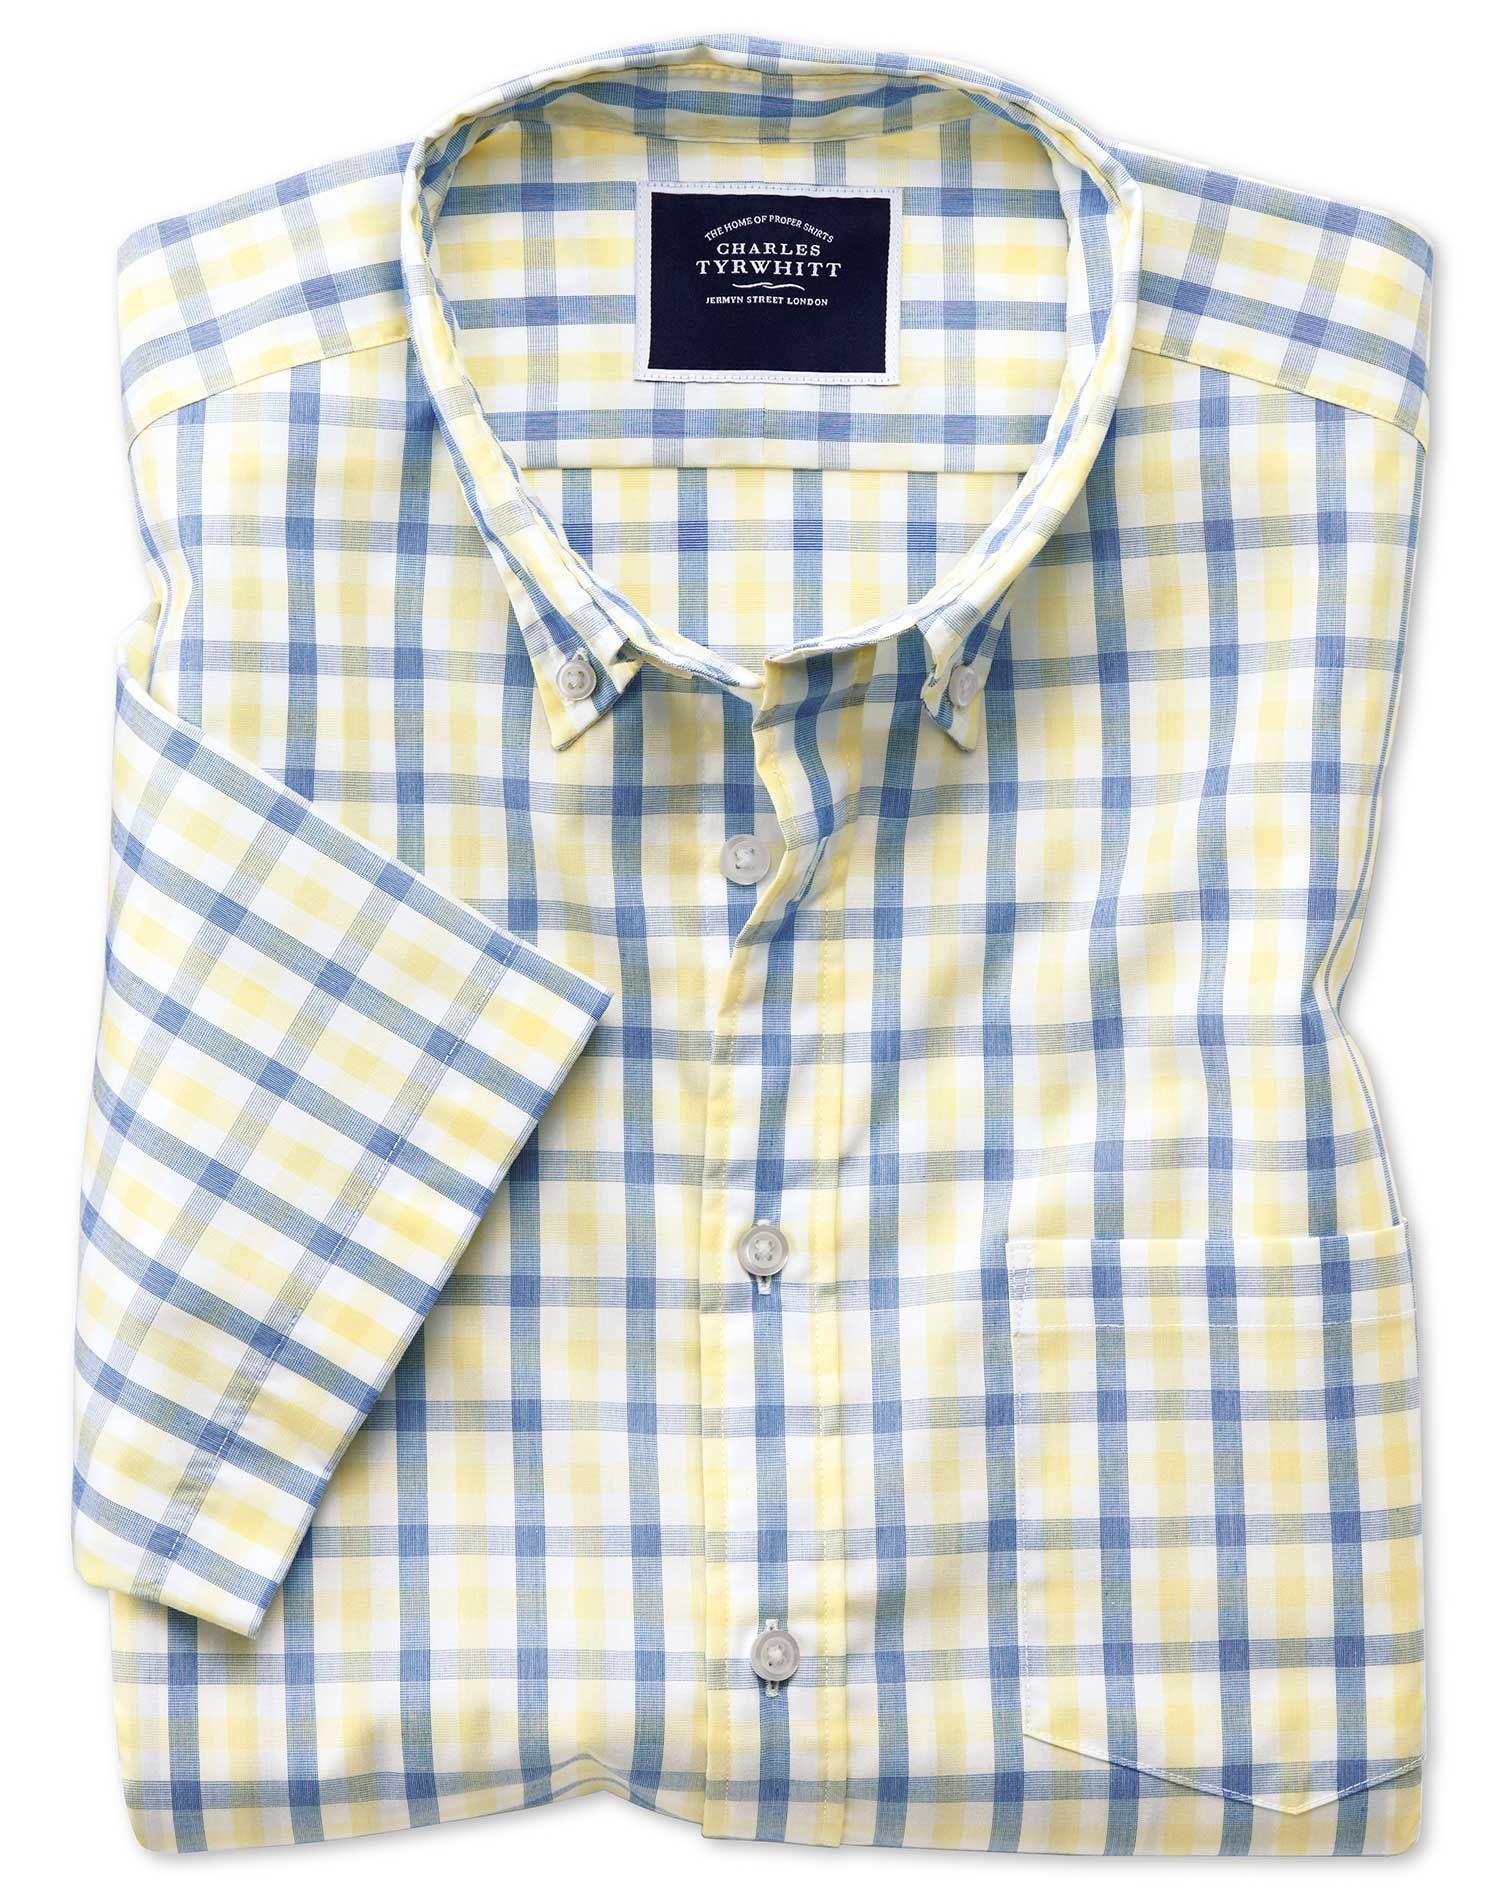 Slim Fit Yellow and Blue Short Sleeve Gingham Soft Washed Non-Iron Tyrwhitt Cool Cotton Shirt Single